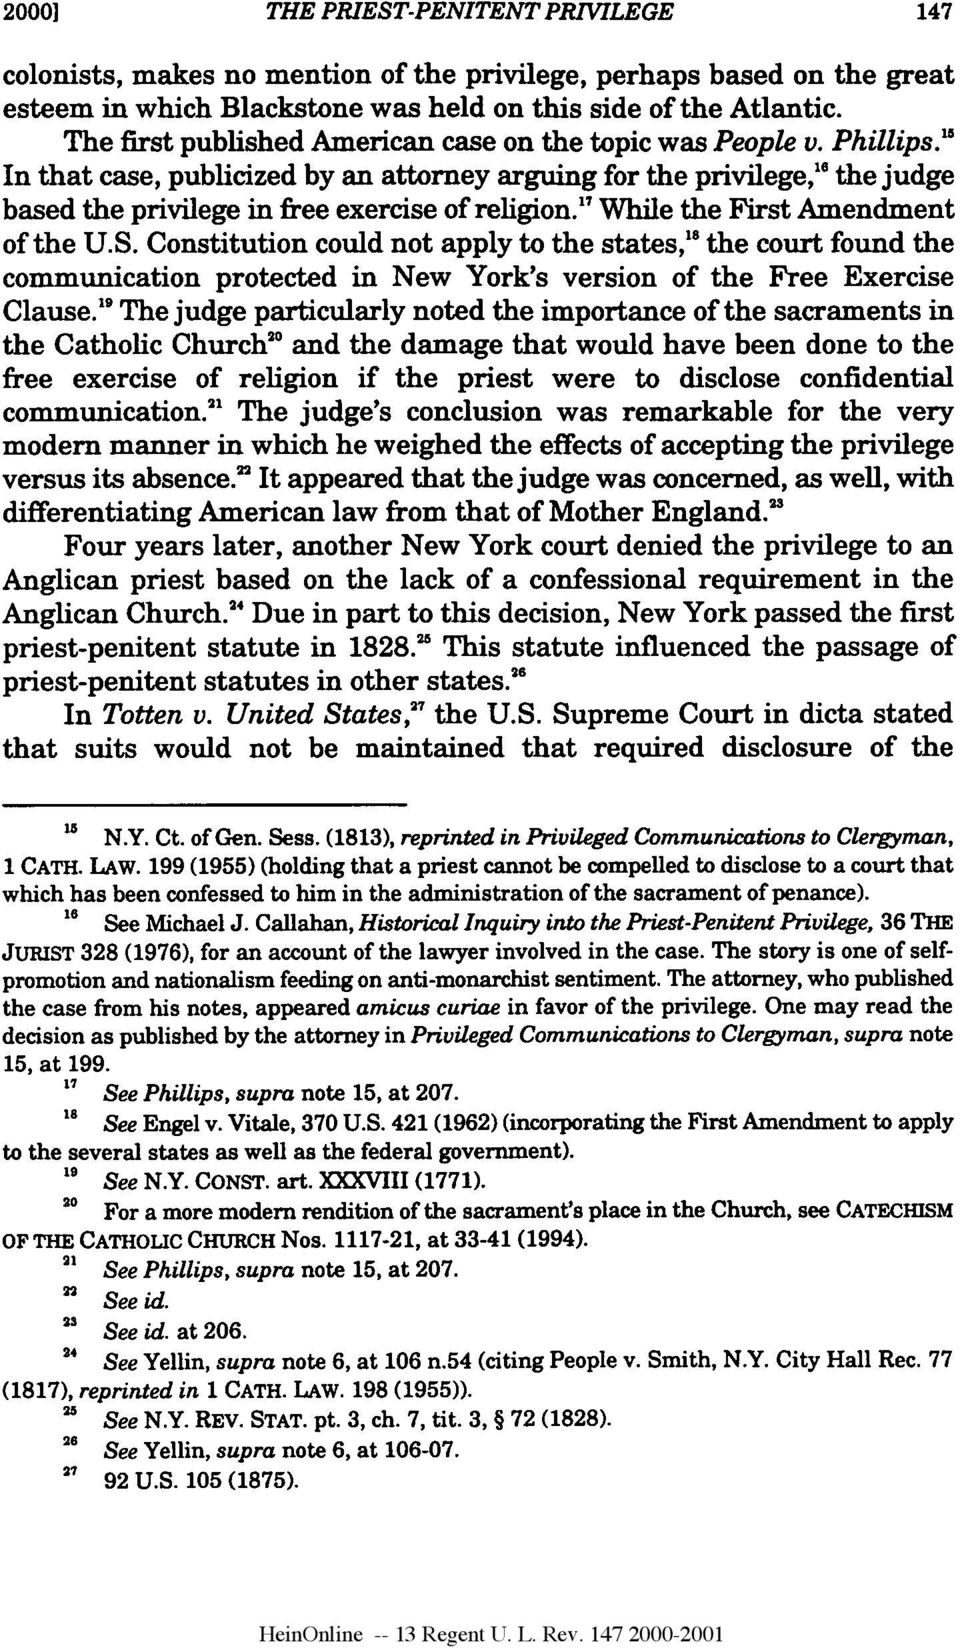 """ In that case, publicized by an attorney arguing for the privilege,"" 6 the judge based the privilege in free exercise of religion.' While the First Amendment of the U.S."